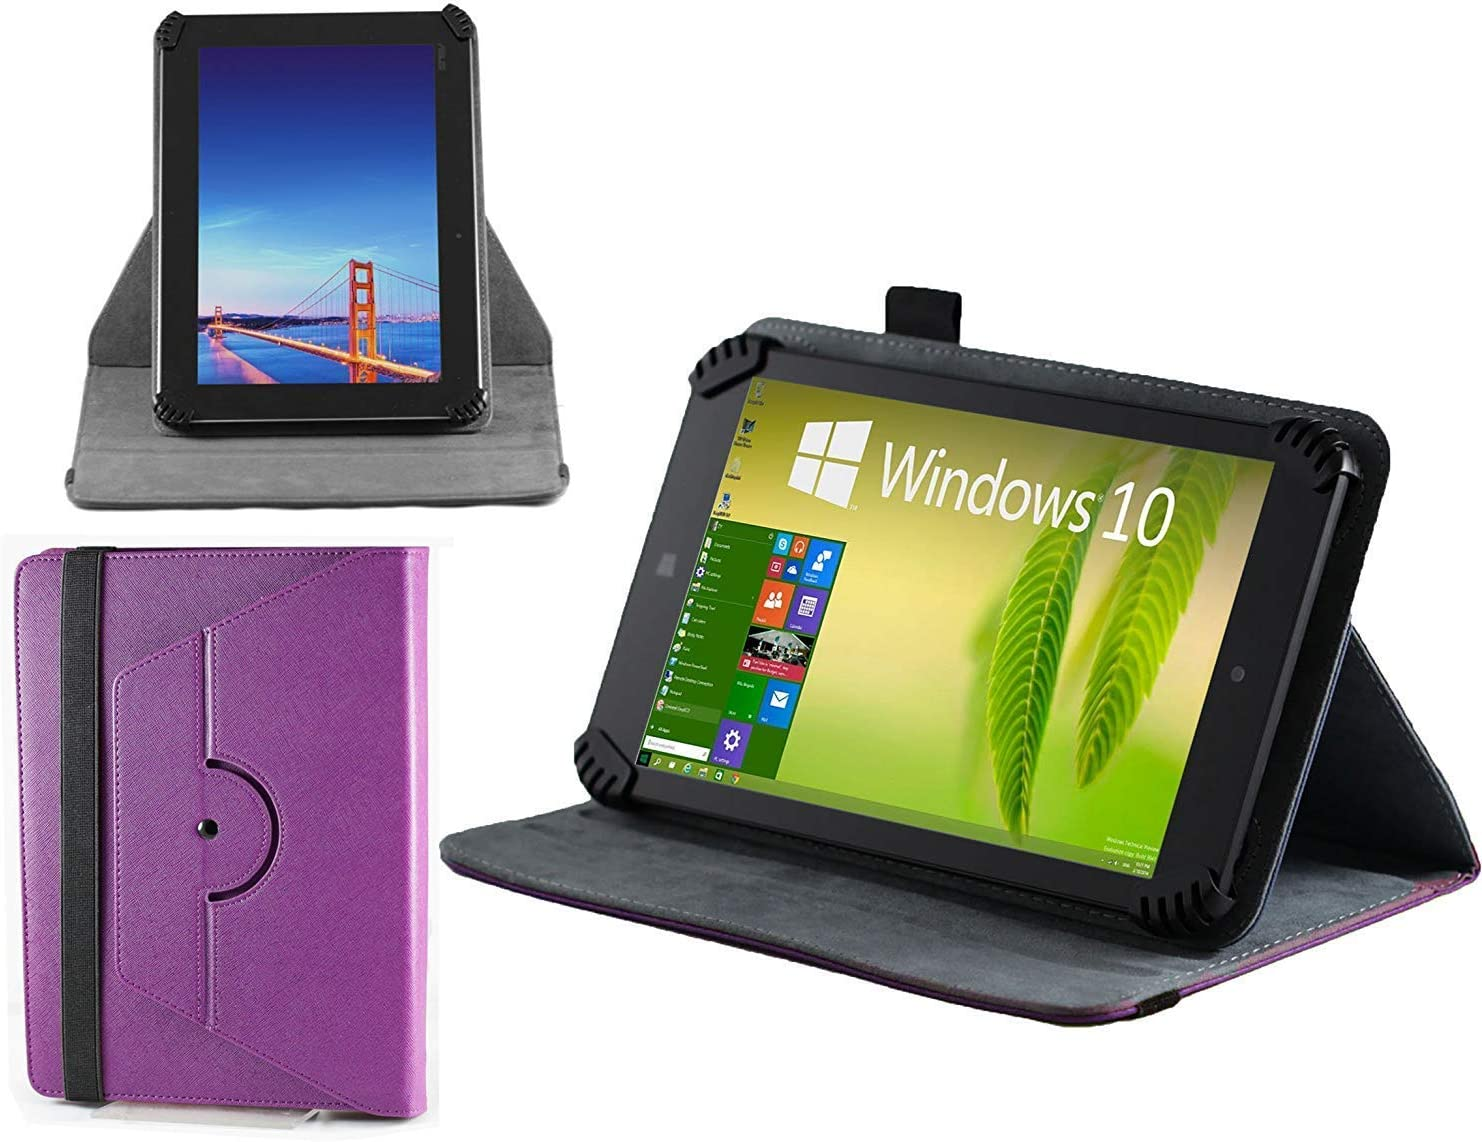 Navitech Purple Leather Case Cover with 360 Rotational Stand & Atlas Stylus Compatible with The LG G Pad F 8.0 | LG G Pad V495 | LG G Pad X 8.0 V520 | LG GPad X2 8.0 Plus V530 | LG G Pad V400